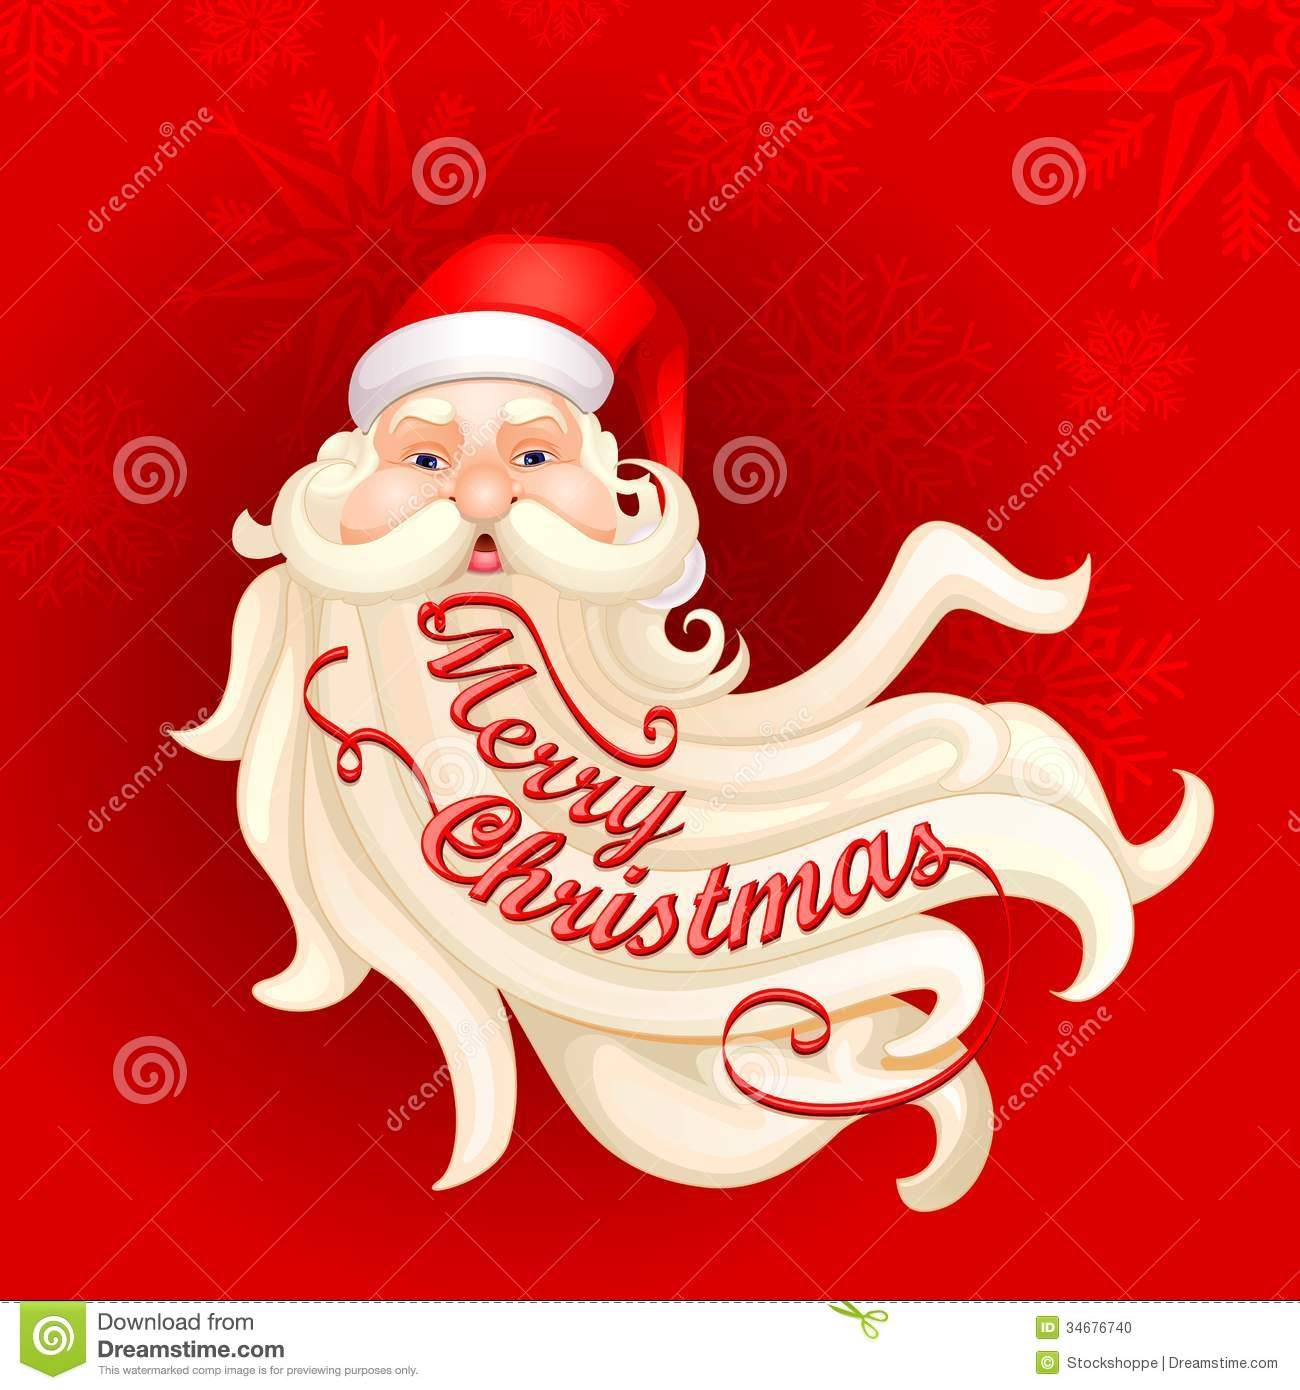 Santa Claus's Beard Forming Merry Christmas Stock Photo - Image ...